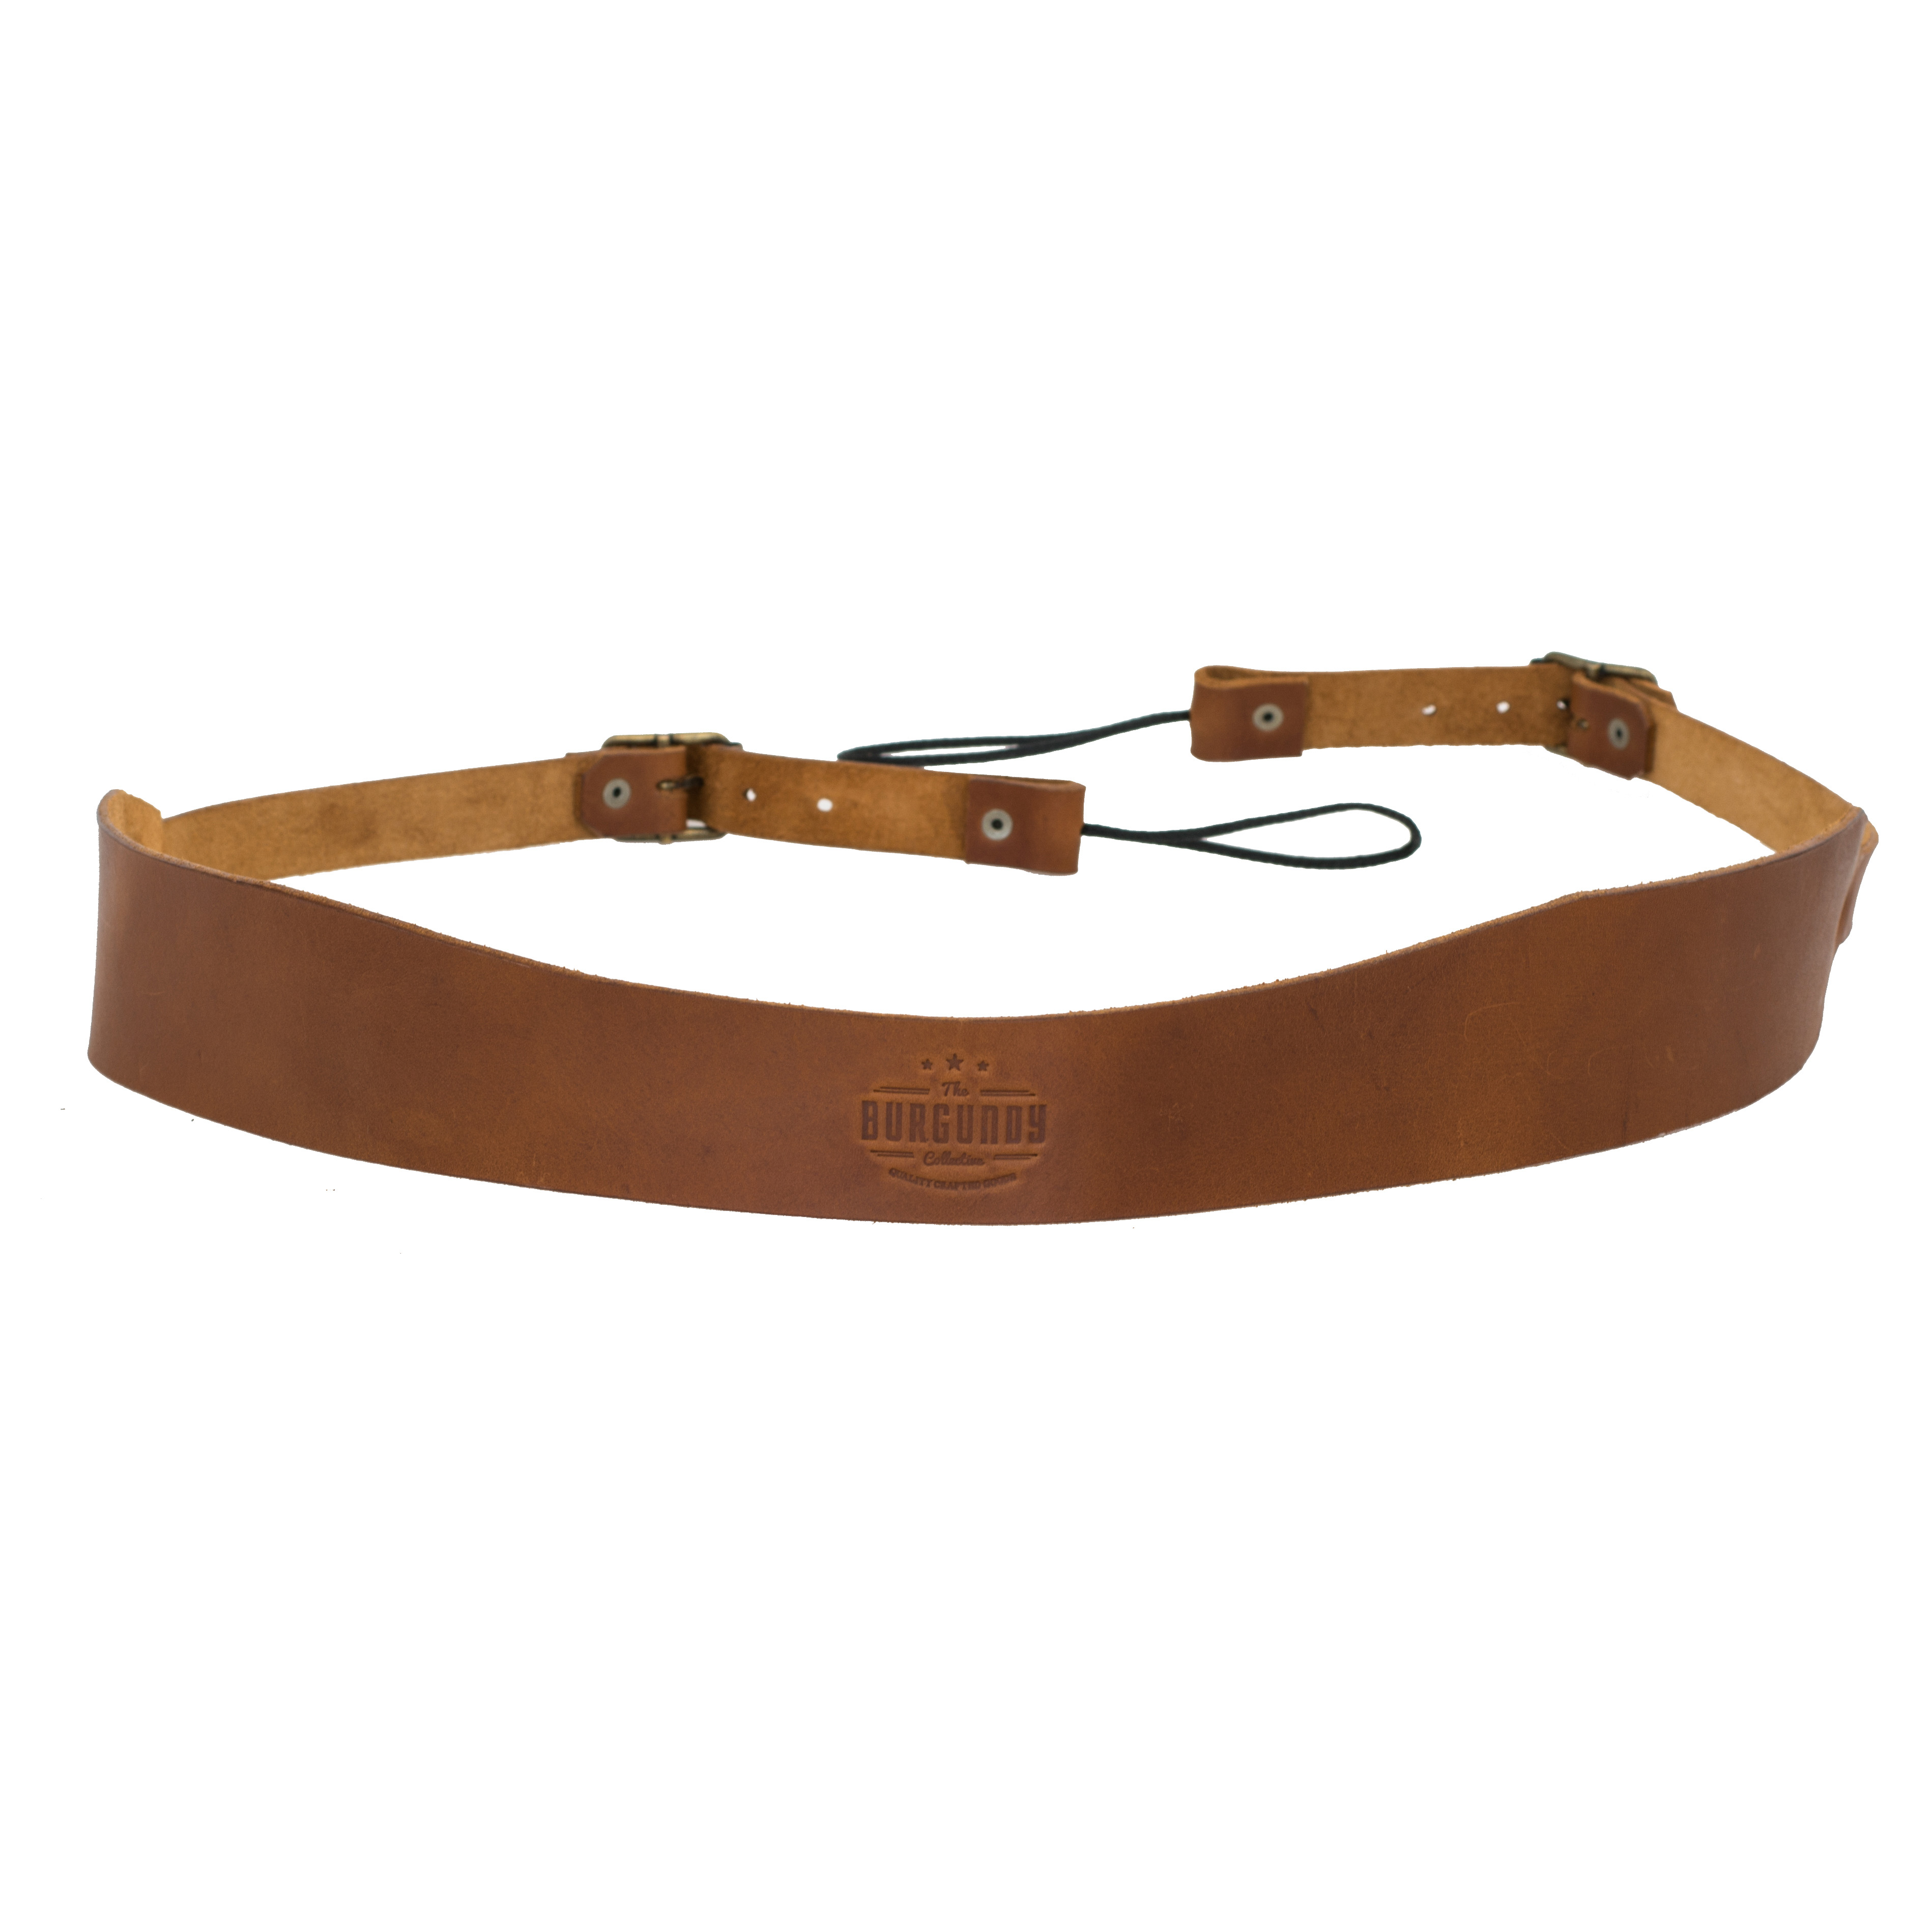 Our camera strap is constructed from the highest quality Natural Vegetable Tanned leather produced in South Africa. Designed to sit comfortable around your neck and keeping you camera secure, while looking super classy.    FEATURES:   Compatible with any standard camera body Shaped neck strap for optimal comfort Adjustable leather straps